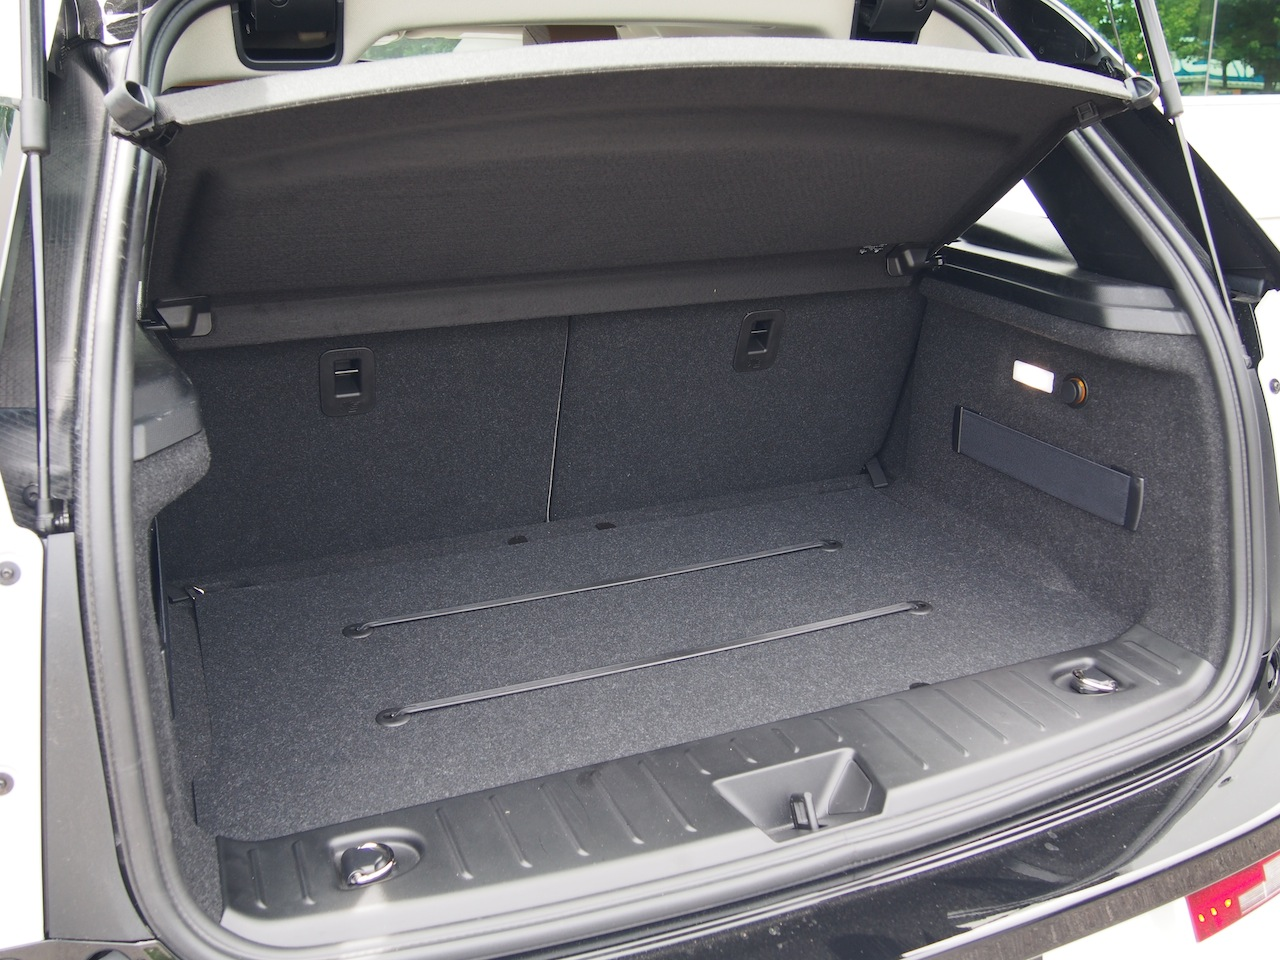 2014 BMW I3 Capparis White Lodge Trunk Storage Space